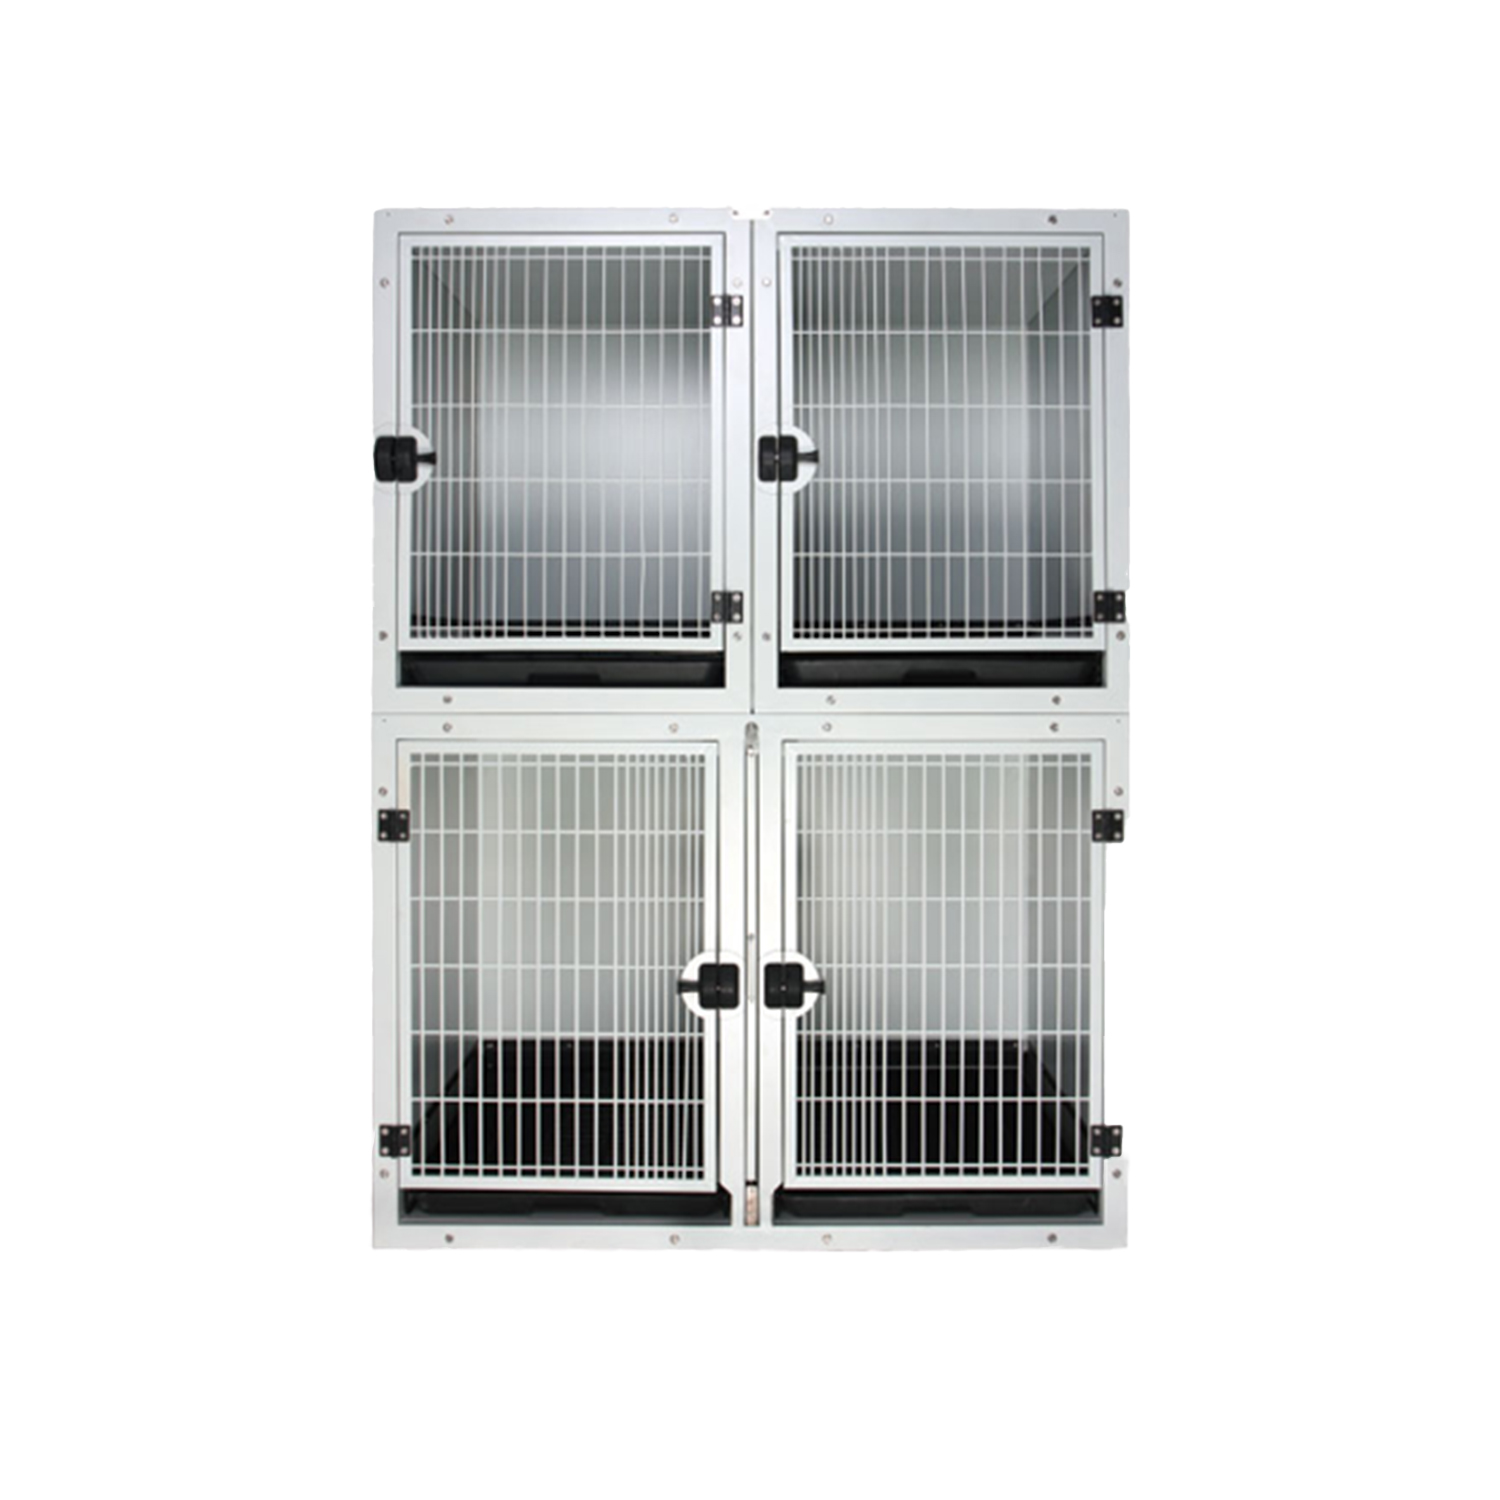 Flat Packing Professional Modular Cage with Solid Walls